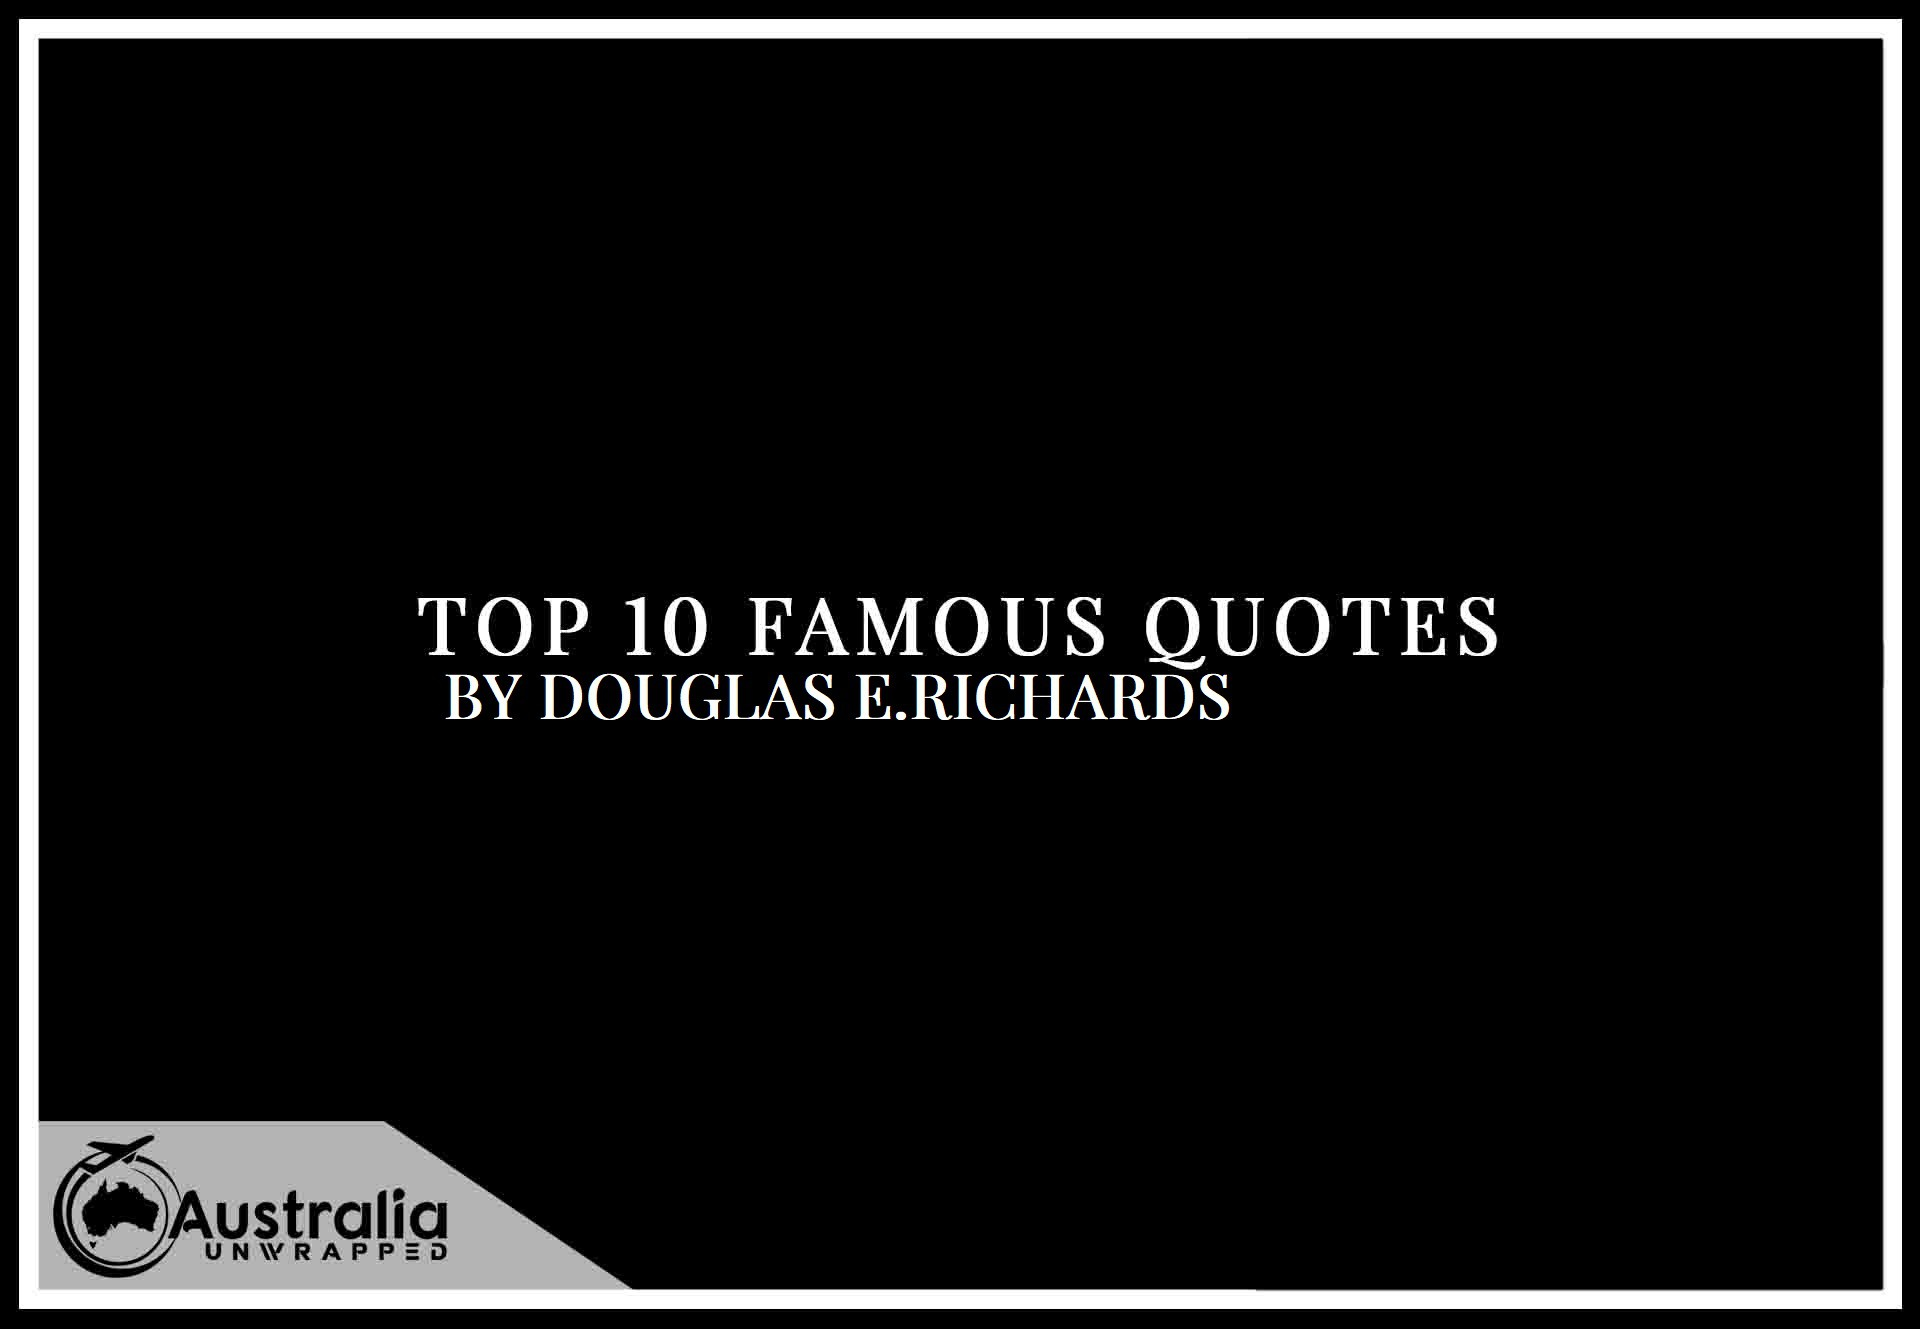 Top 10 Famous Quotes by Author Douglas E. Richards